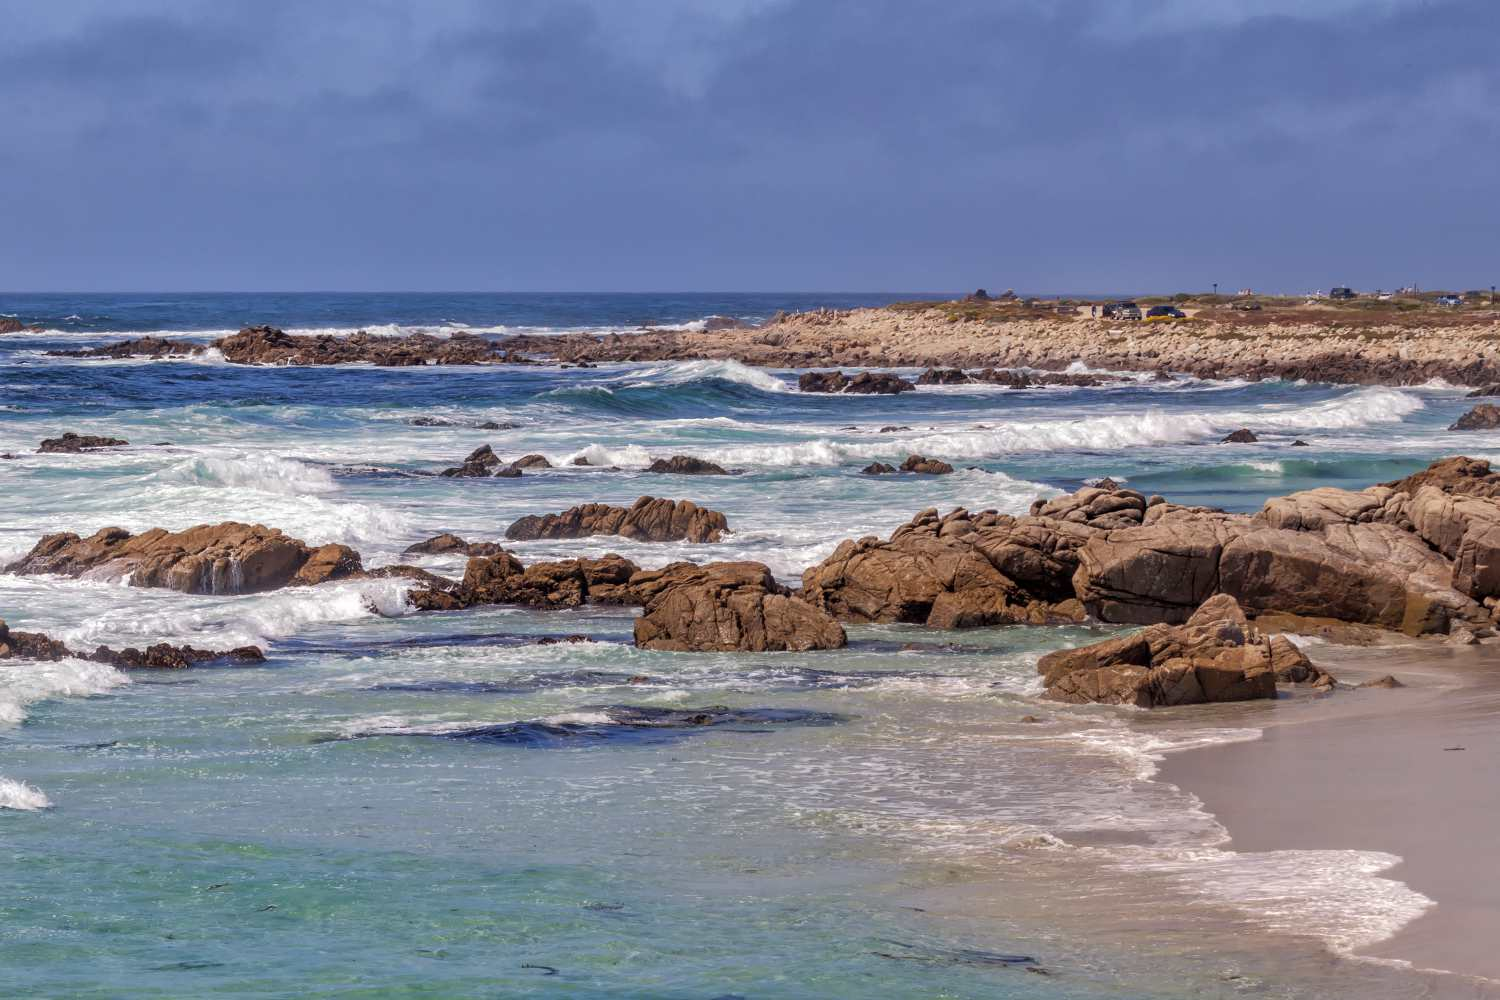 17-Mile Drive - Must-Do Stops and Proven Tips